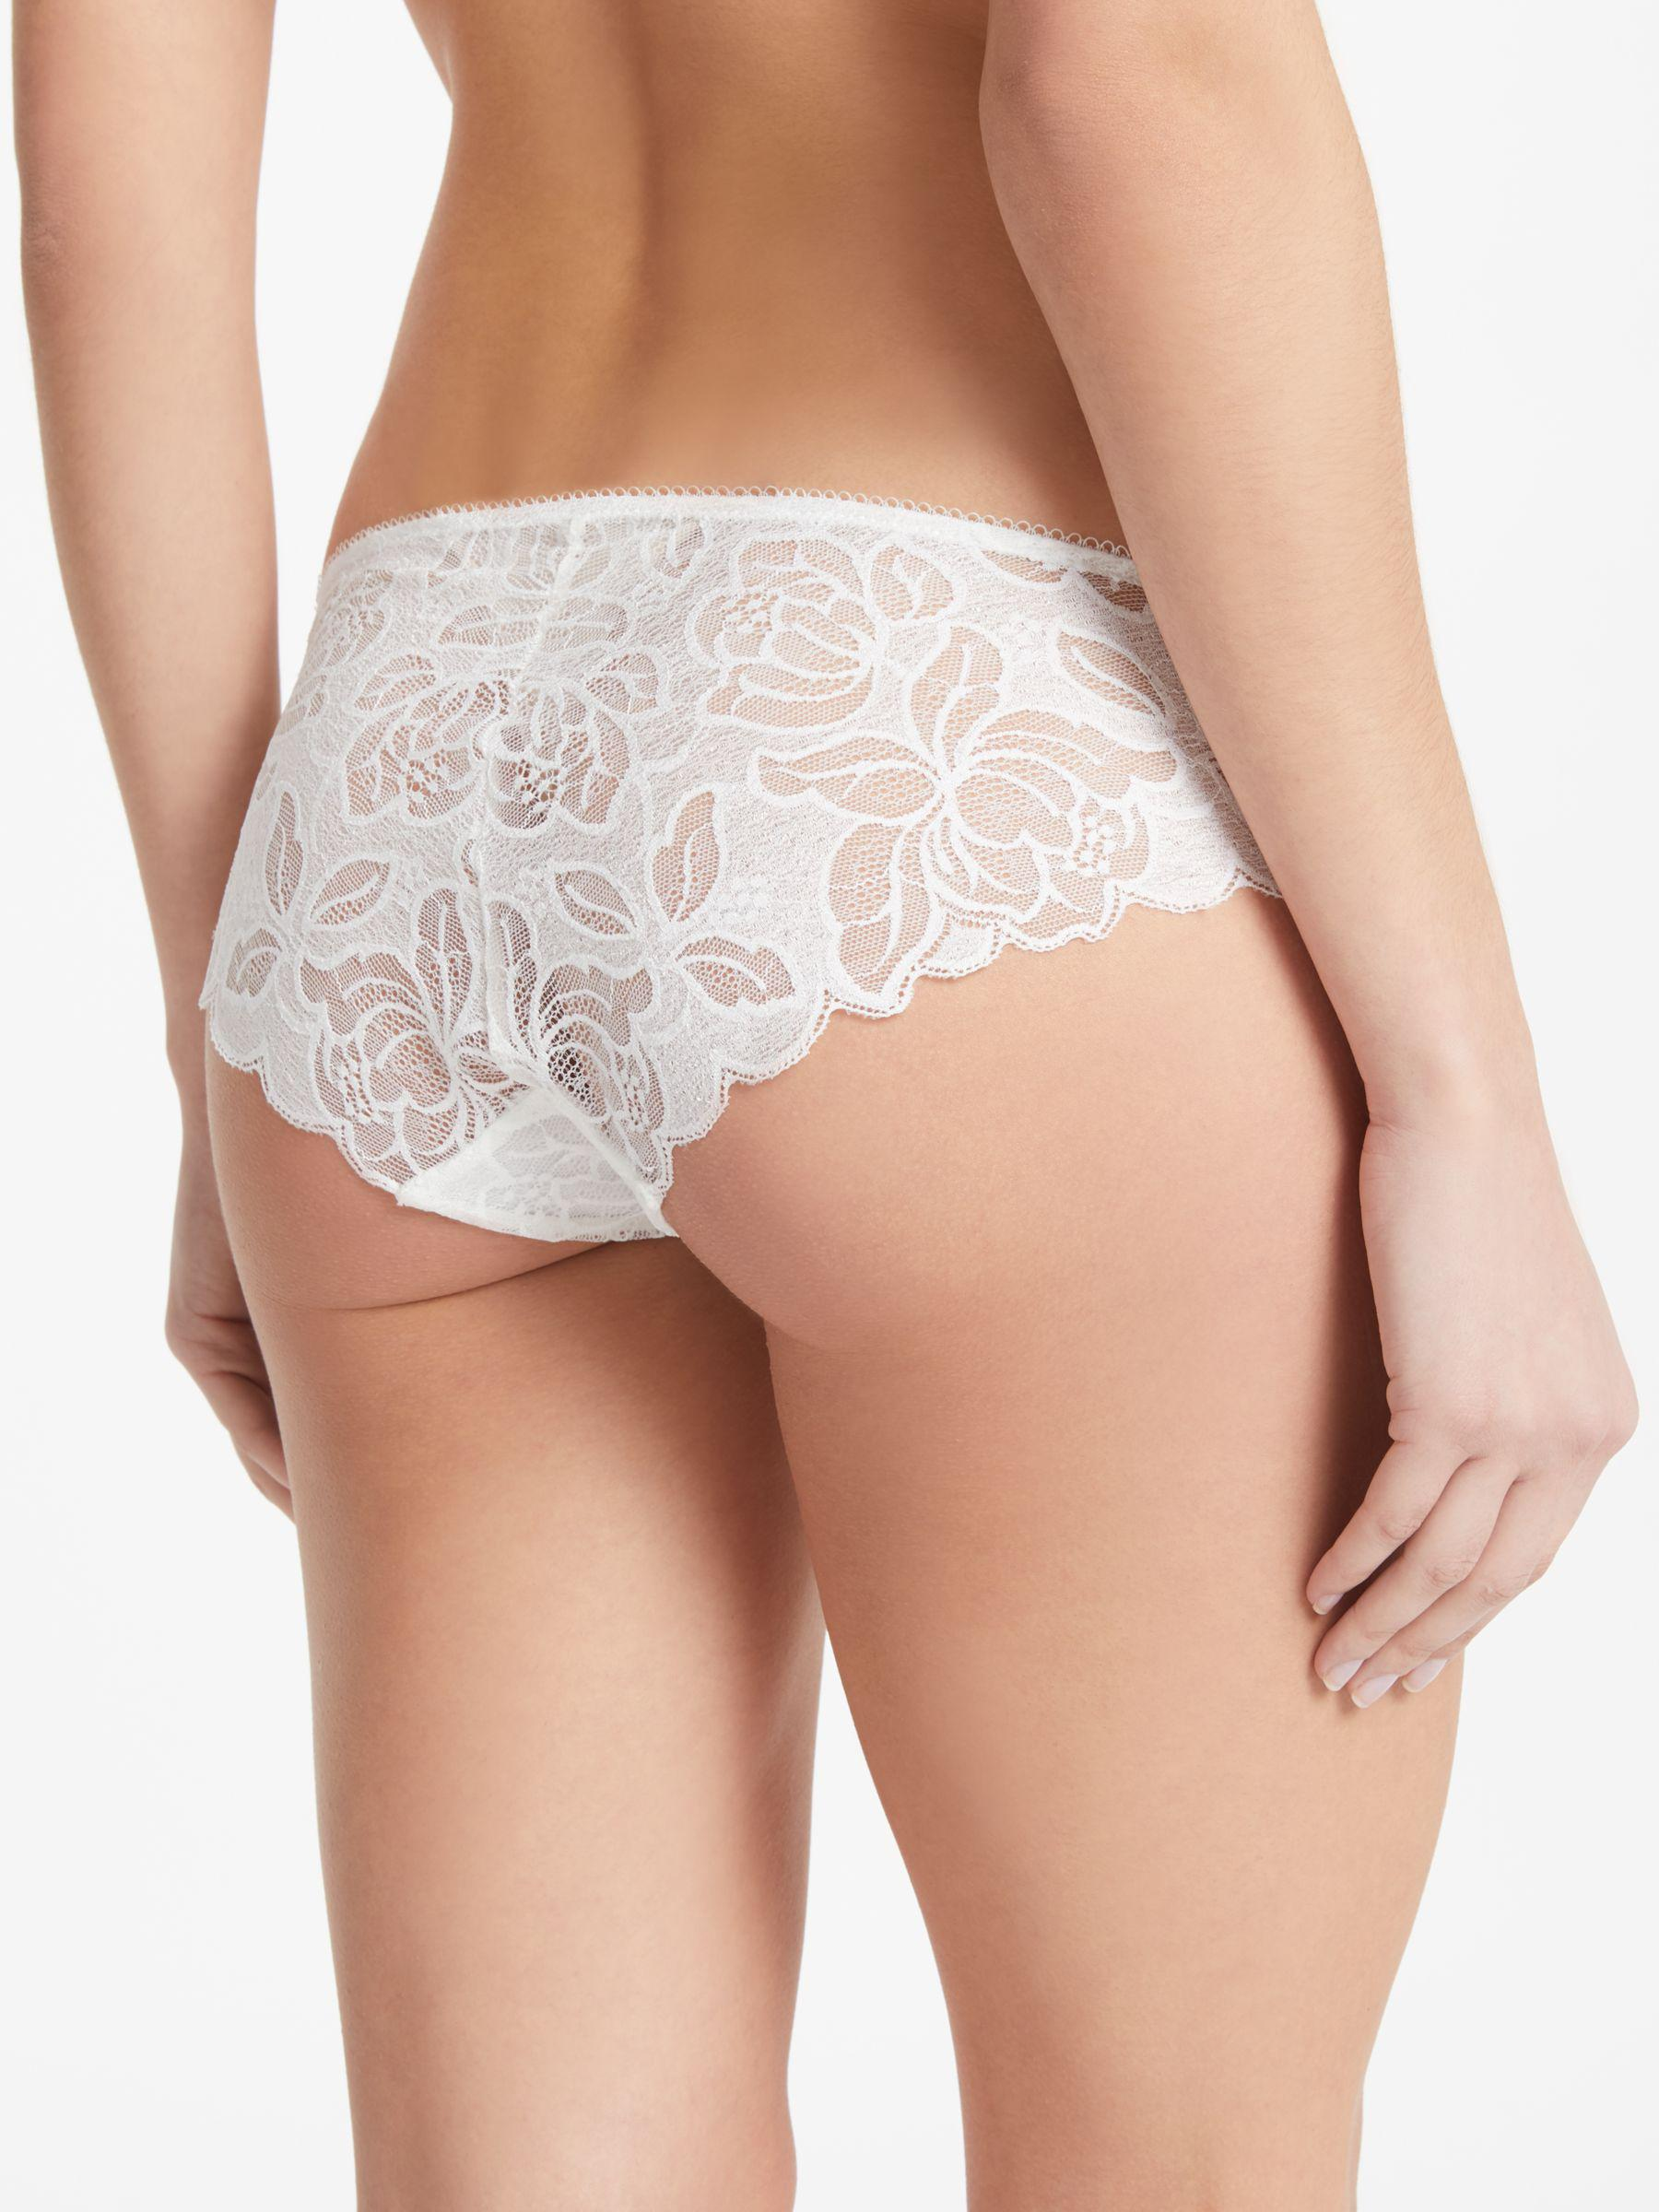 Elle Macpherson The Body Mid Rise Hip Hugger Hipster Brief